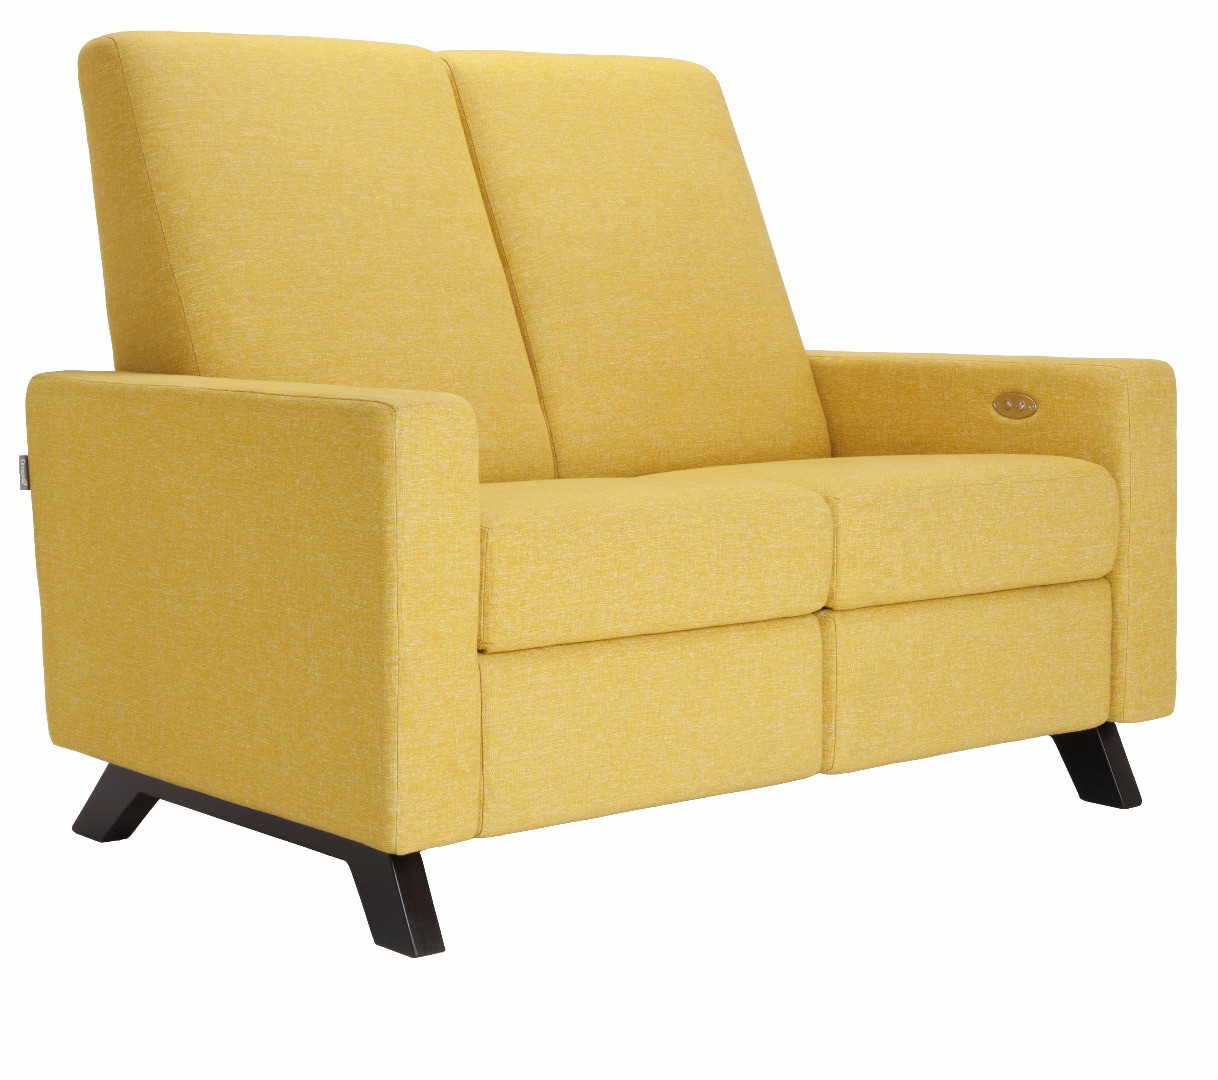 Glider with Nursing Ottoman | Dutailier Ultramotion | Dutailier Glider Cushions  sc 1 st  Marc Charles Steakhouse & Furniture u0026 Rug: Best Dutailier Ultramotion For Glidder Ideas ... islam-shia.org